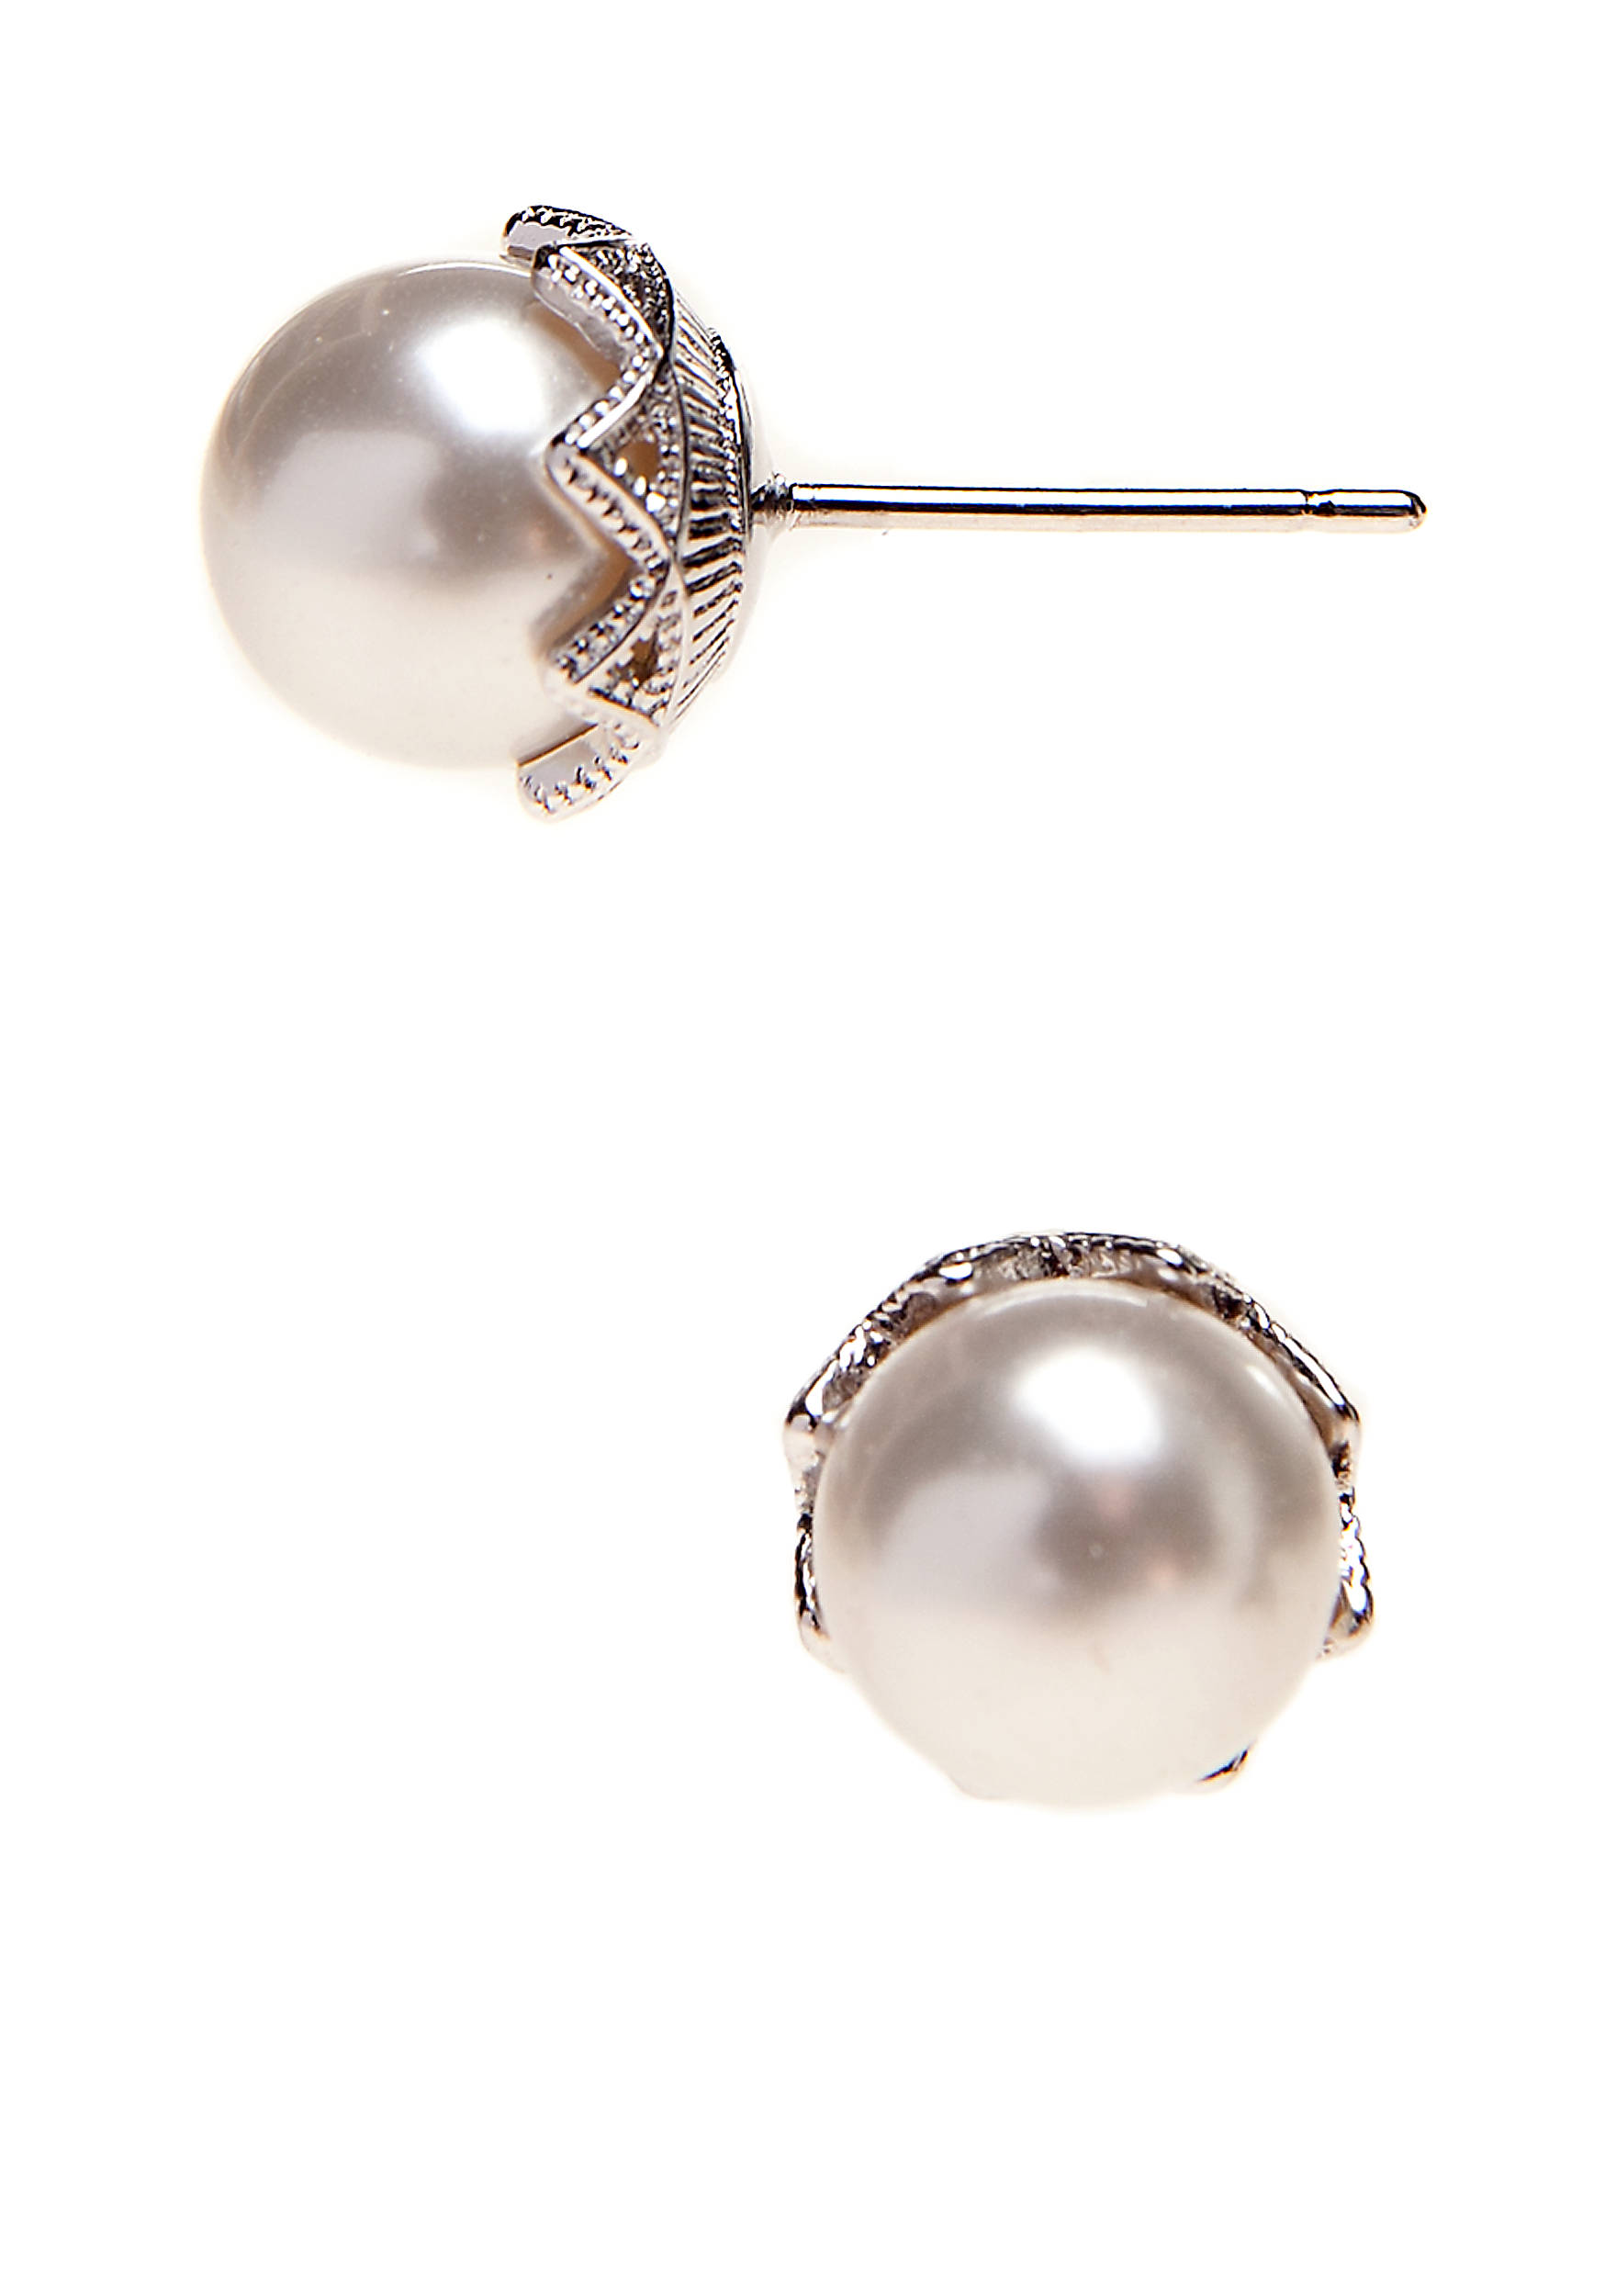 Pearl Stud Earring 5800554ao11582rwp Images